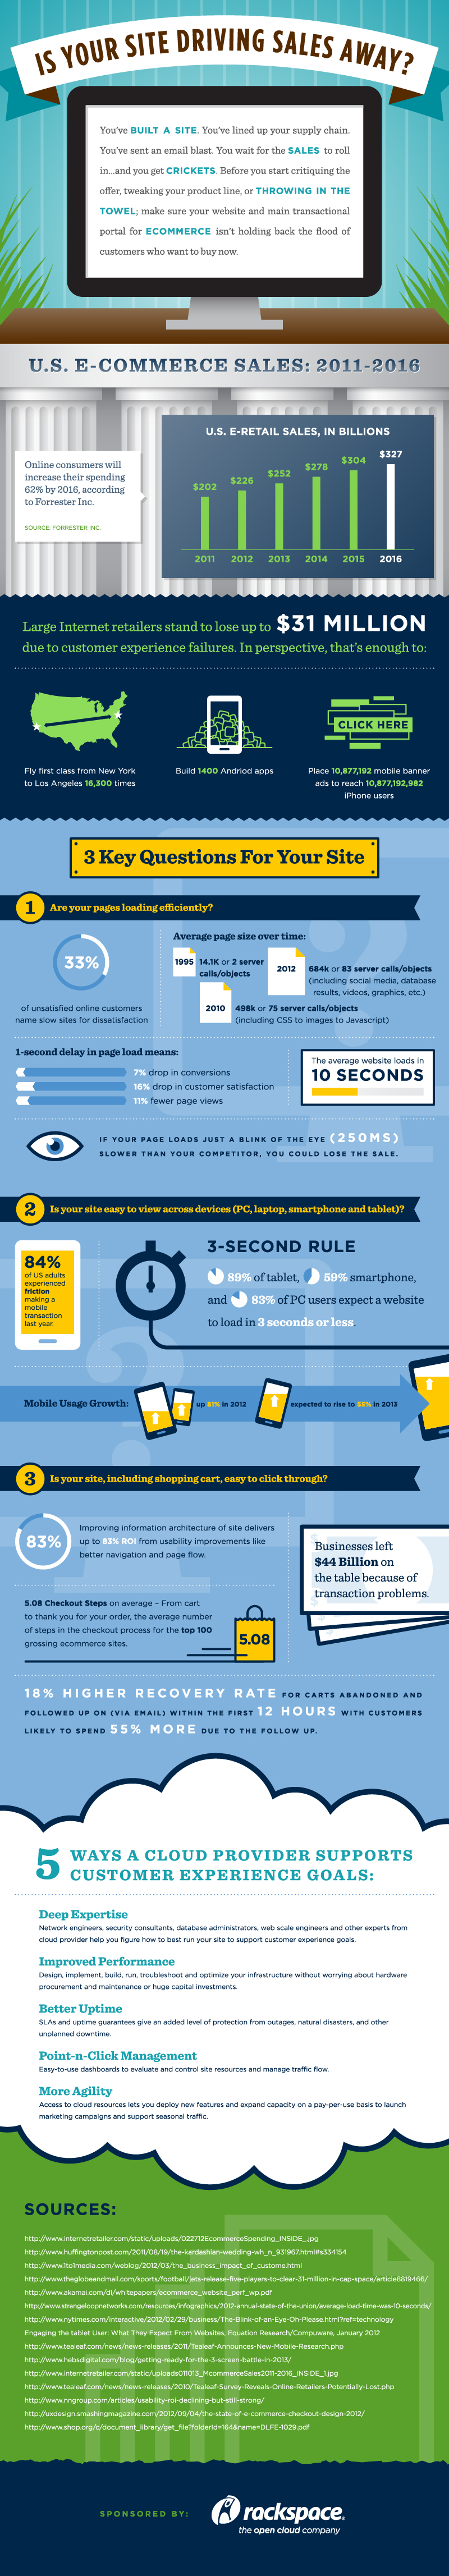 Is Your Site Driving Sales Away Infographic